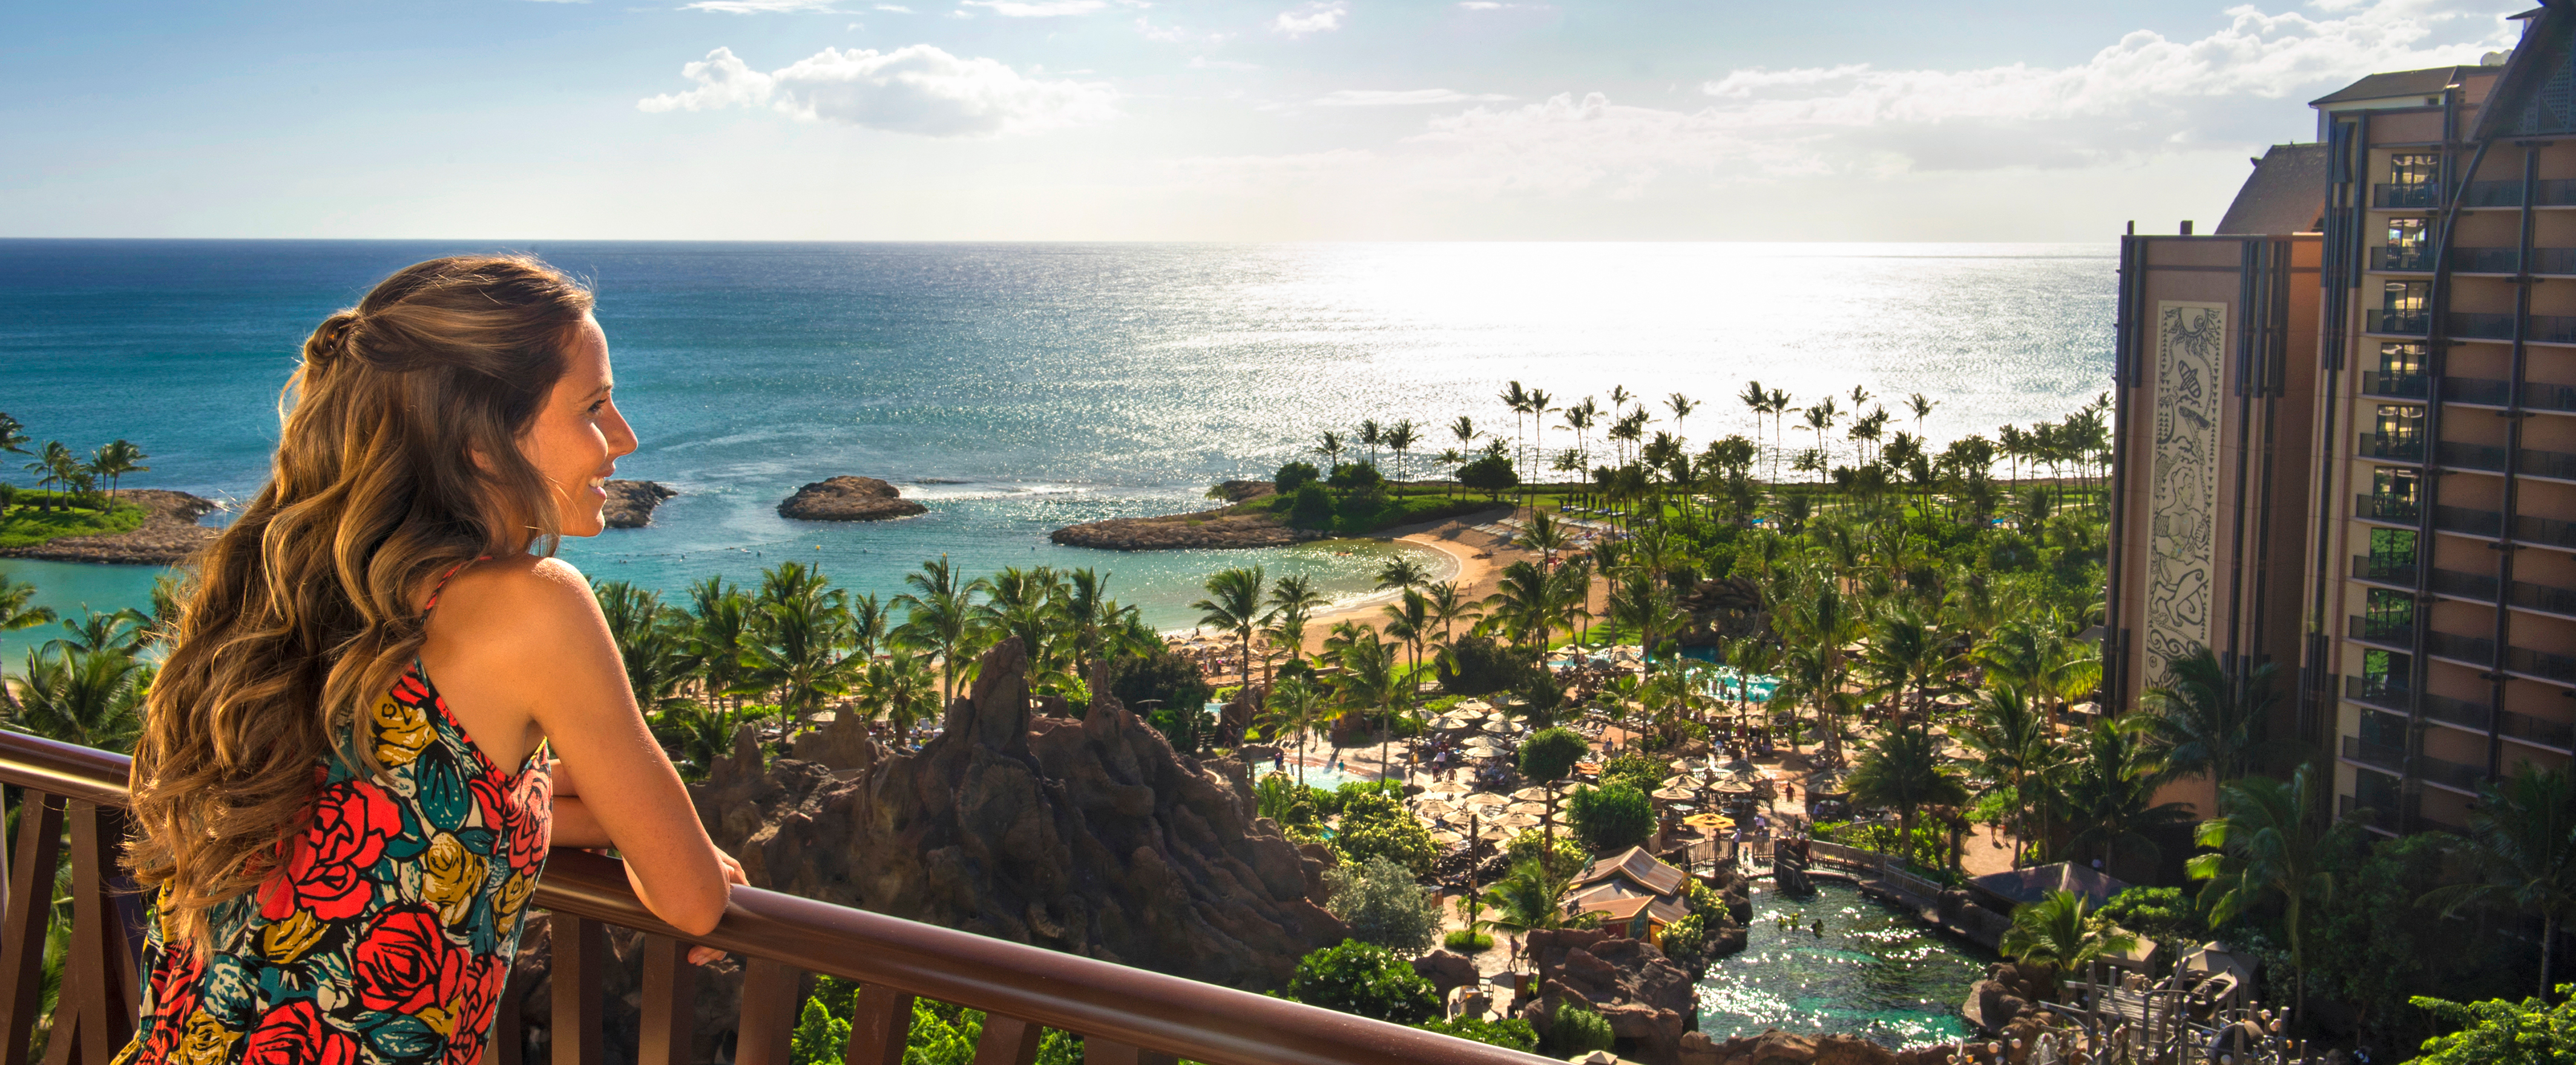 A woman in a dress stands on a balcony high above the pools and beachfront of Aulani Resort and Spa